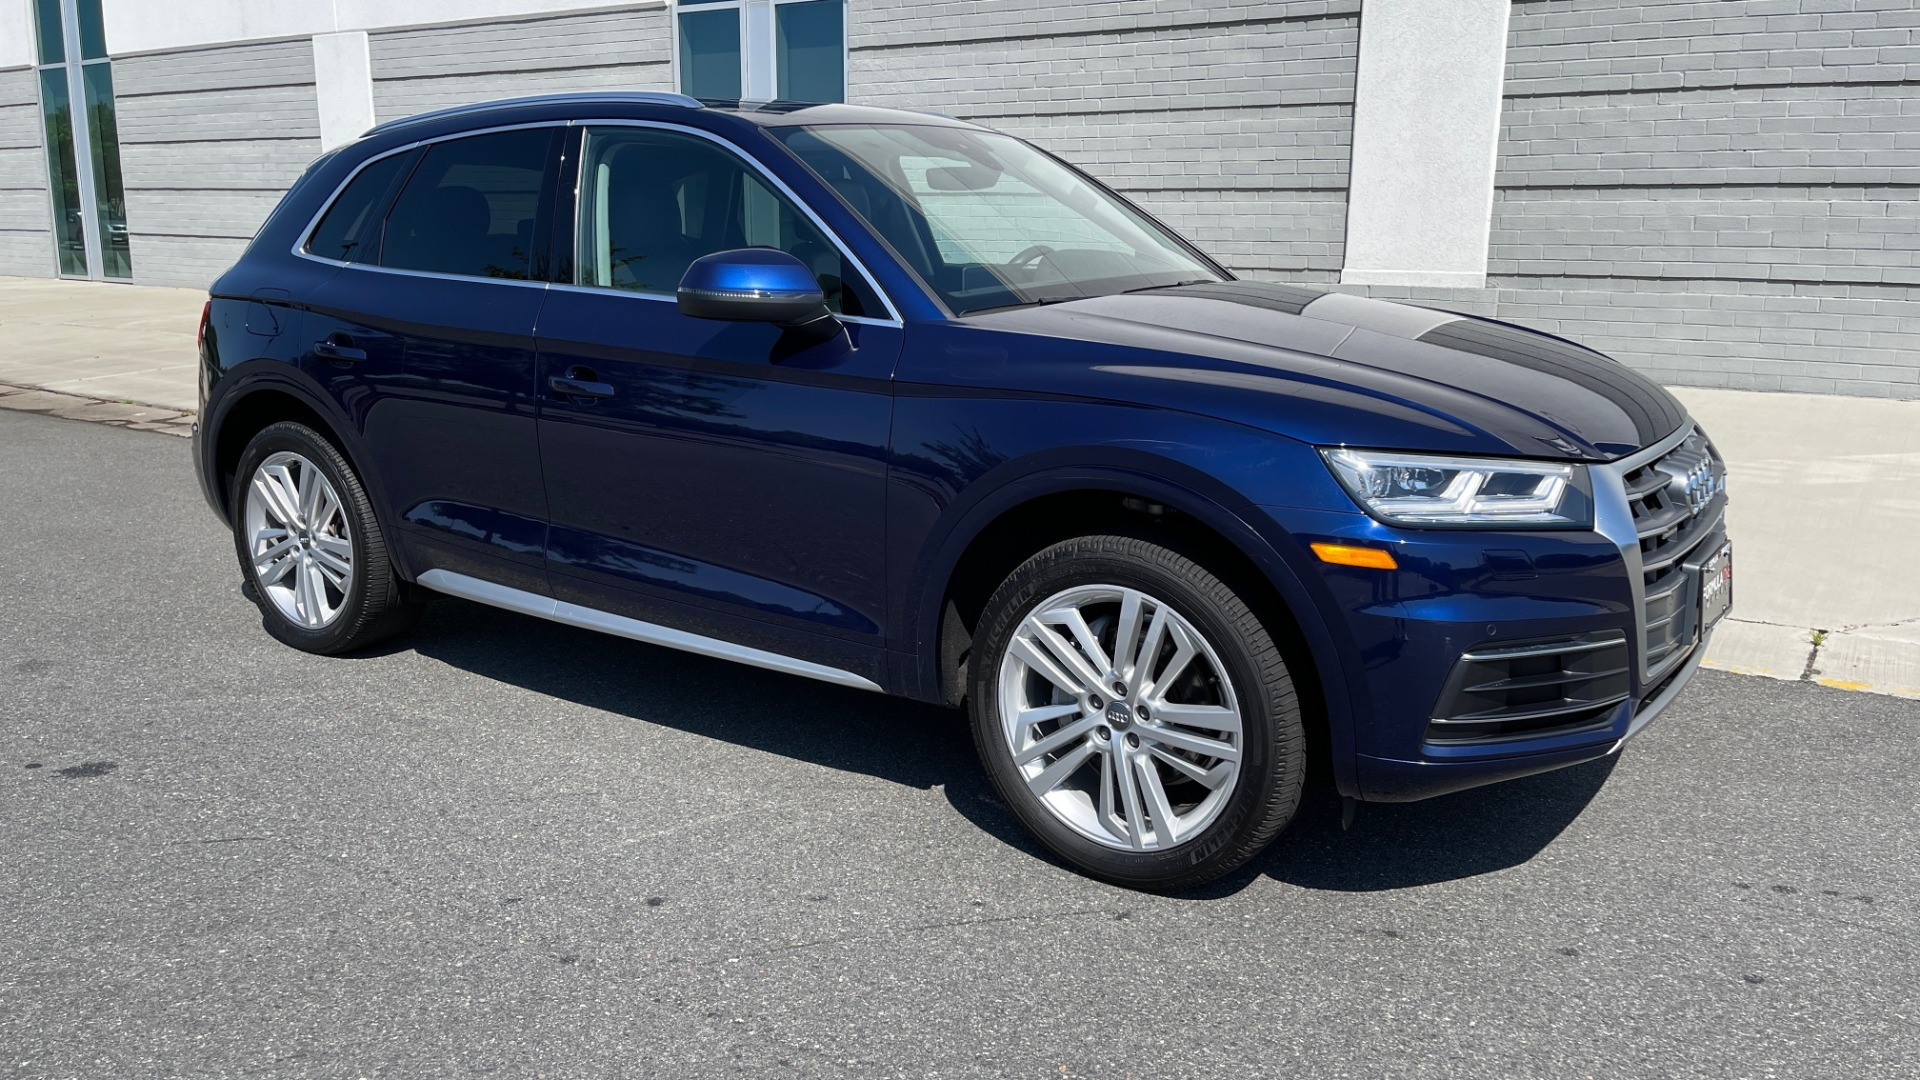 Used 2018 Audi Q5 PREMIUM PLUS / NAV / PANO-ROOF / PARK SYSTEM / REARVIEW for sale $33,695 at Formula Imports in Charlotte NC 28227 6